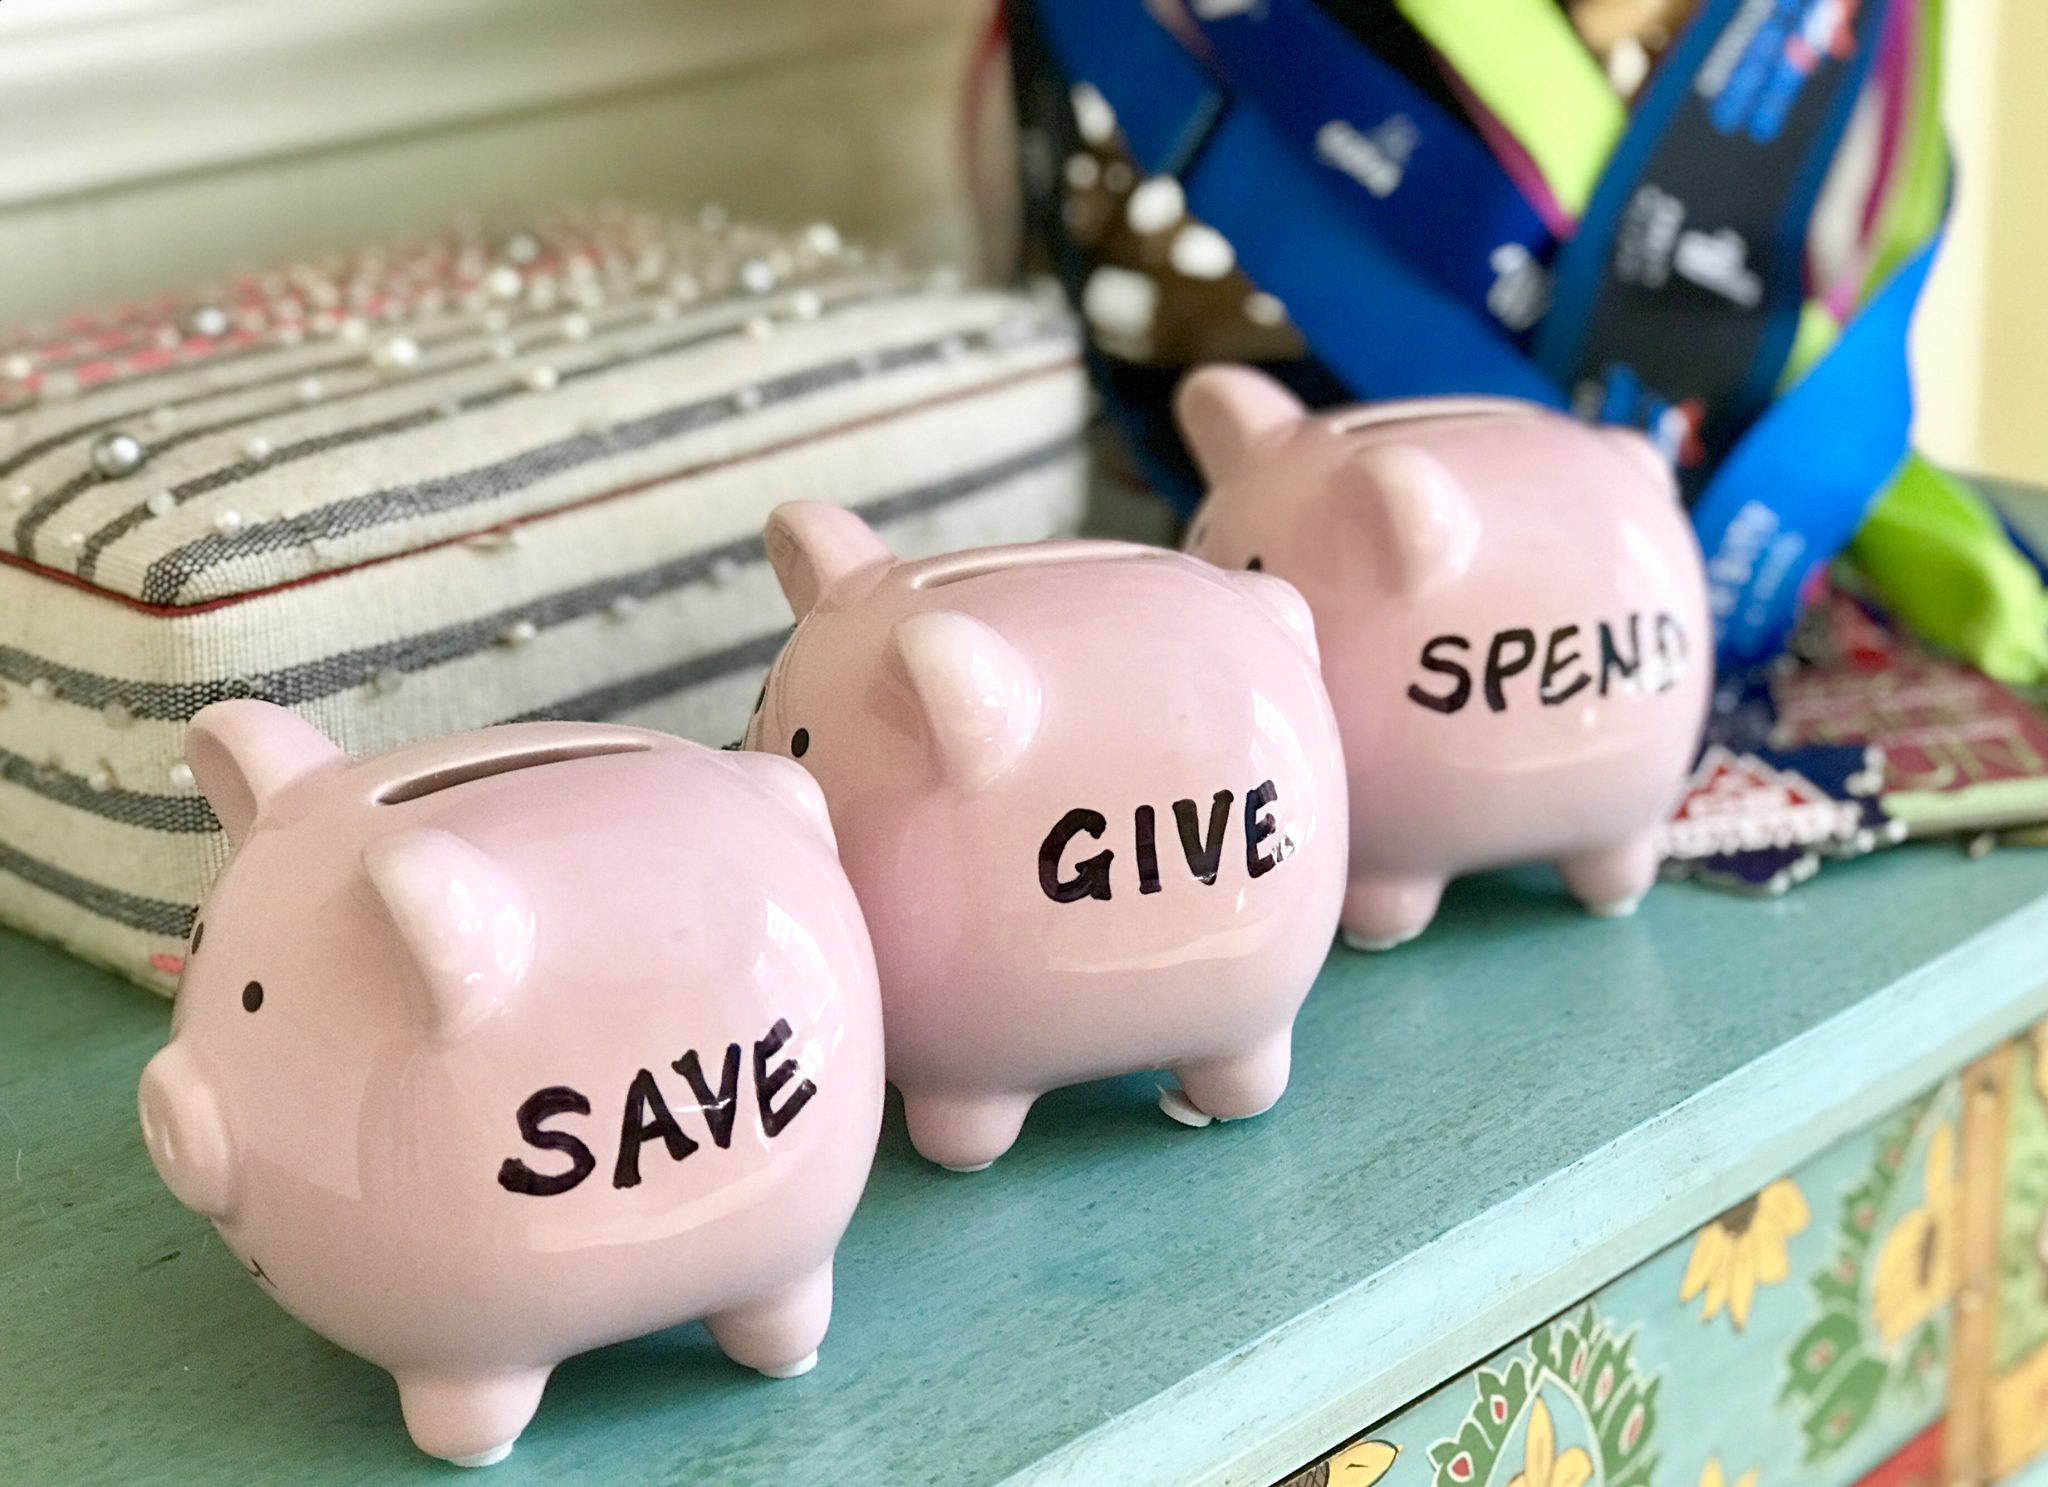 Save Spend and Give piggy banks